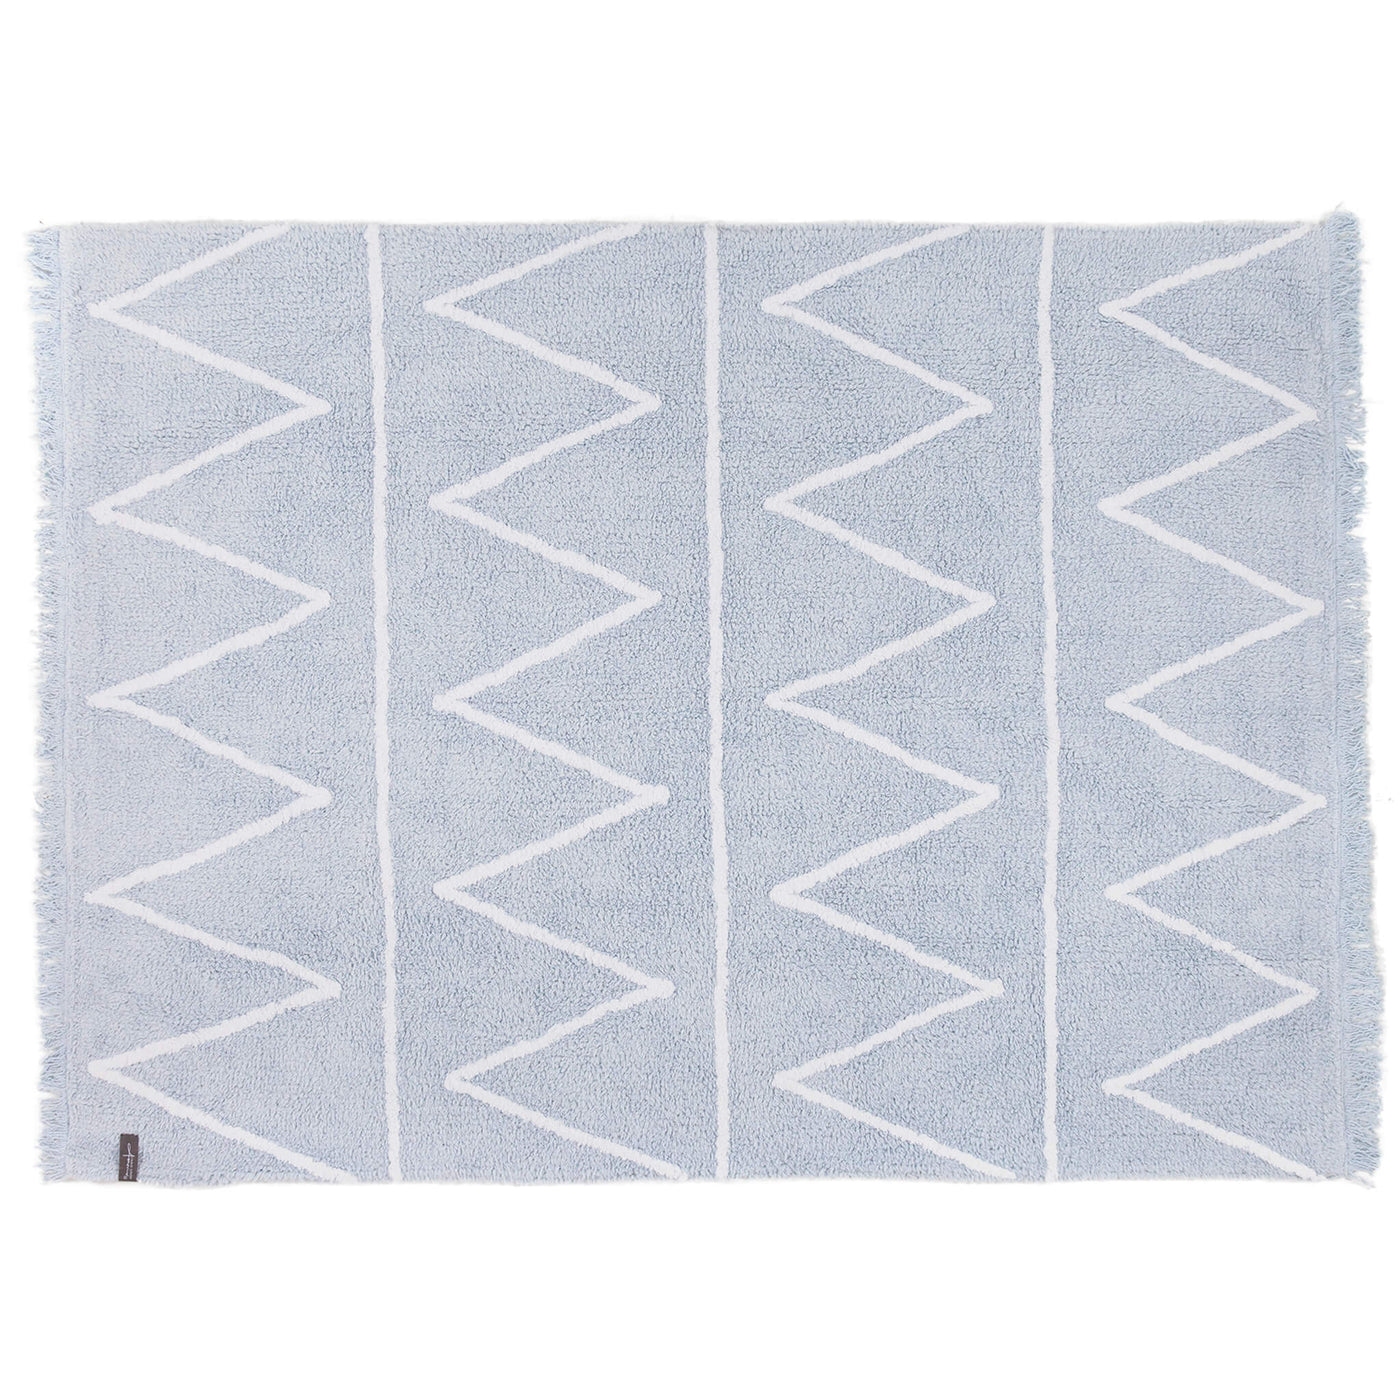 Hippy Washable Rug - Soft Blue